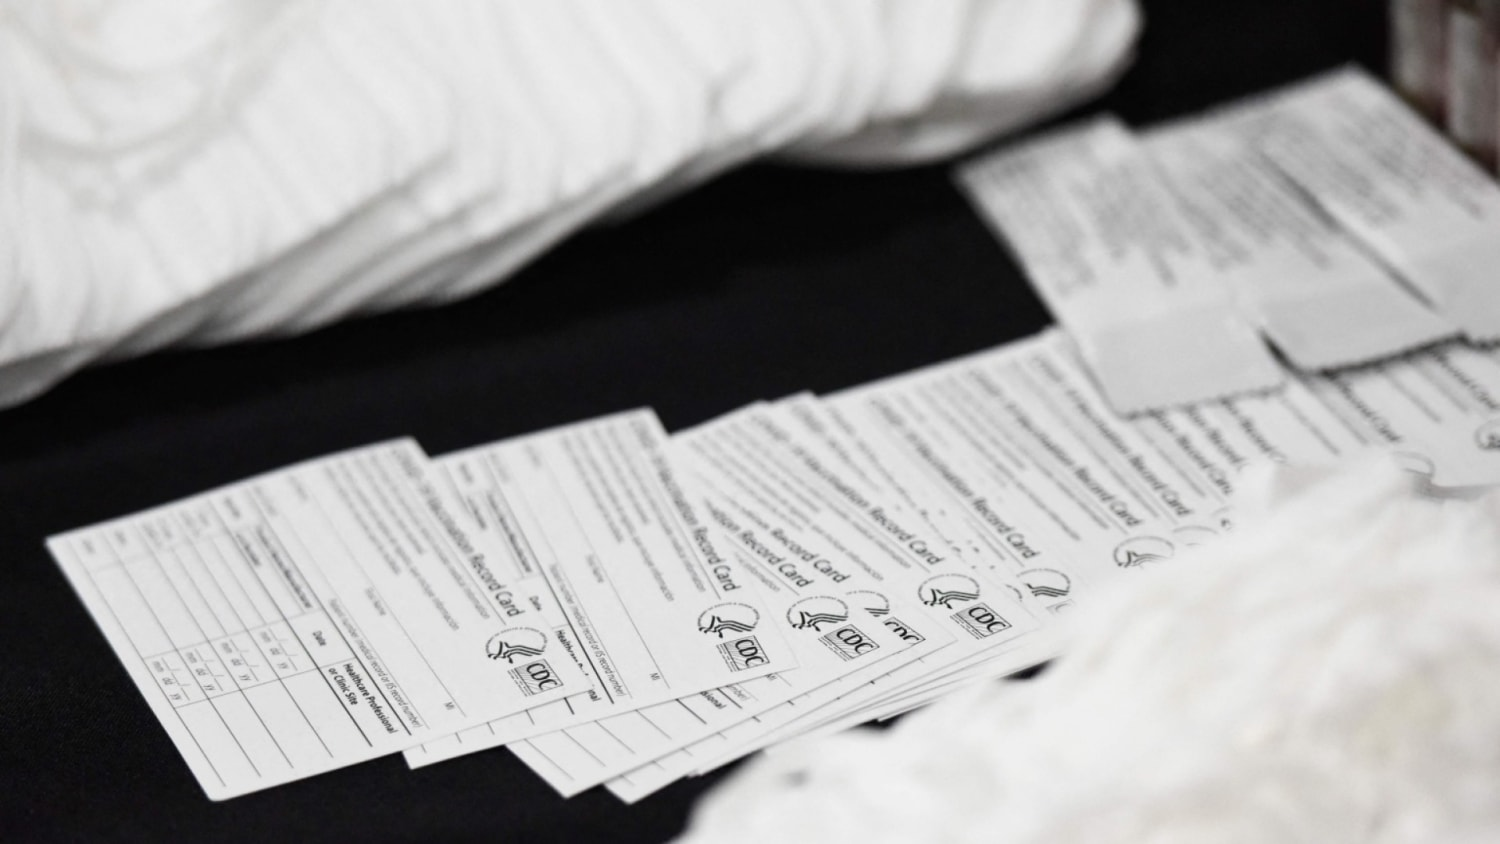 Customs Nabs Fake Vaccine Cards From China